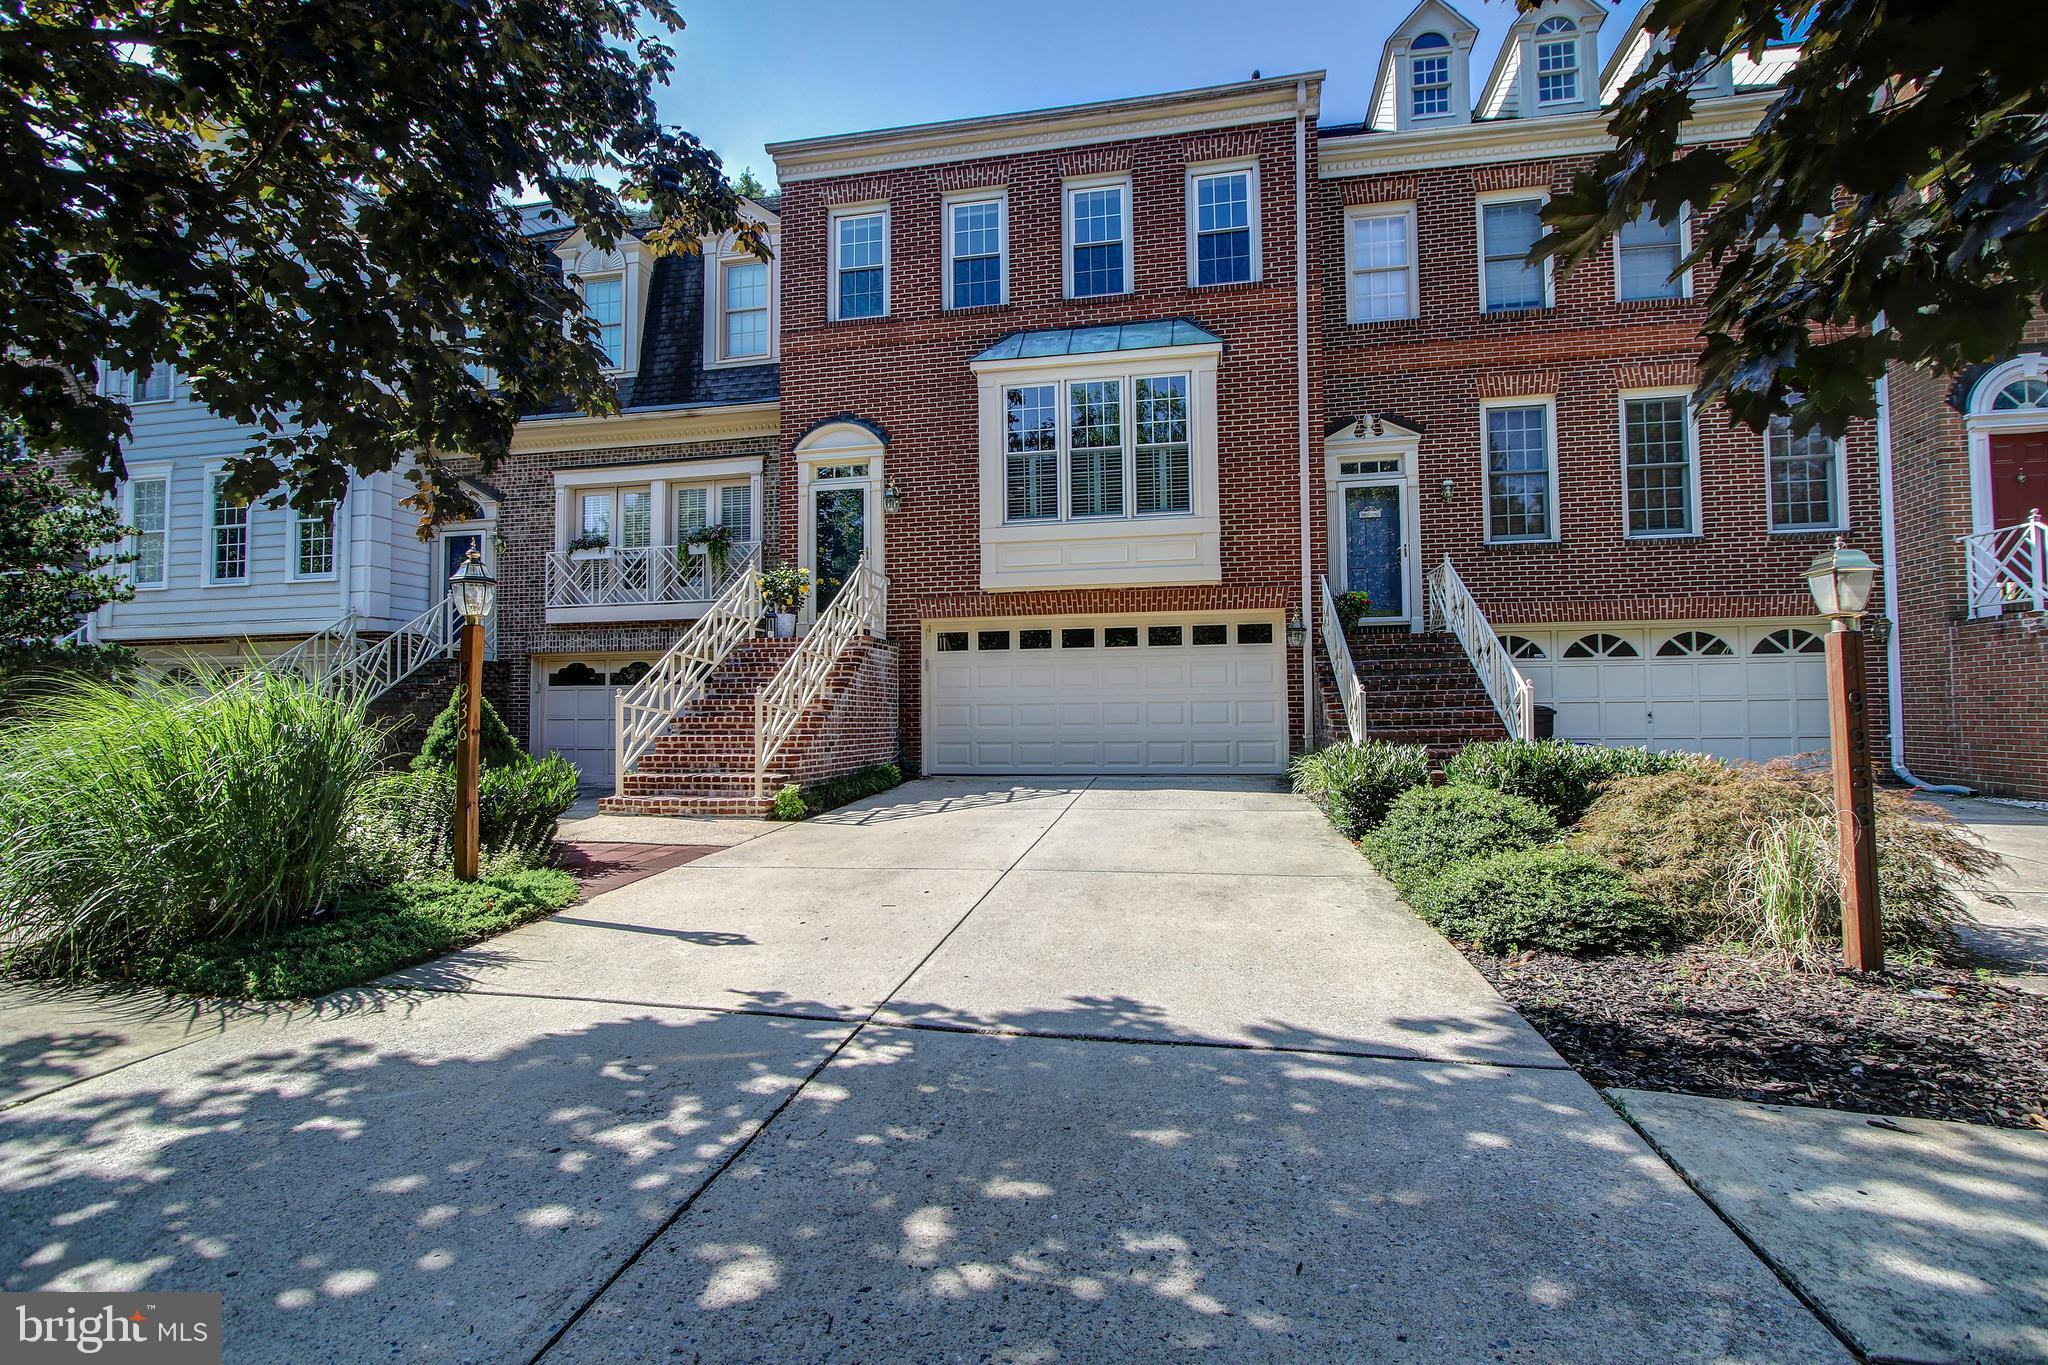 REMODELED 4 LEVEL TOWN HOME W/UNPARALLELED FIT & FINISH....SIMPLY PERFECT NEW BATHS & KITCHEN, NEW H